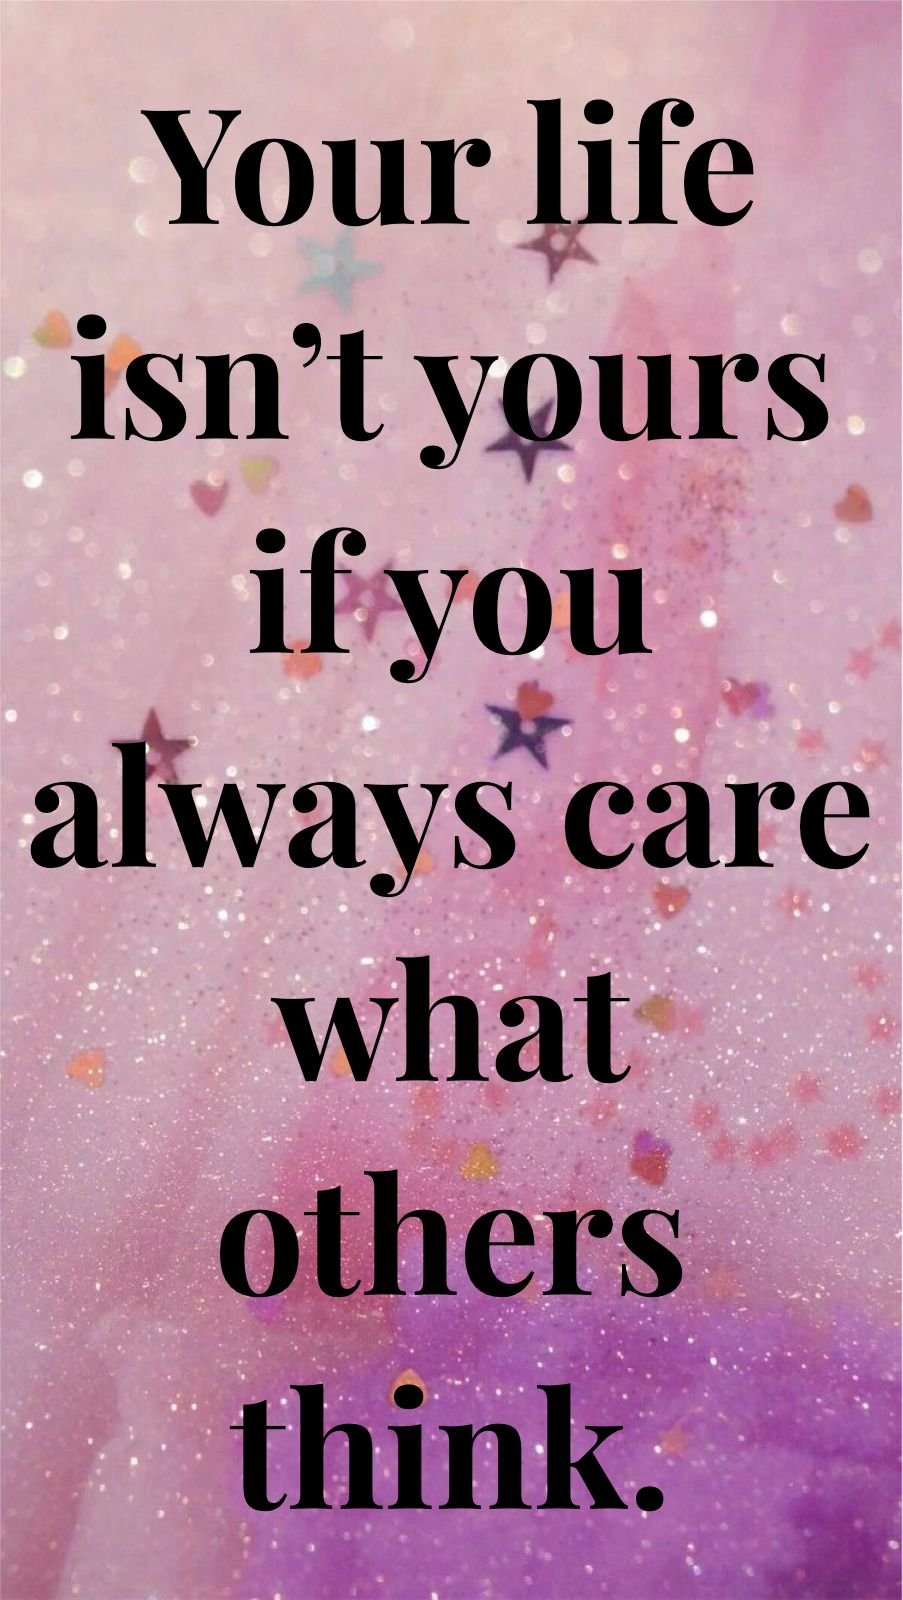 Life isn't yours if you always care what others think.